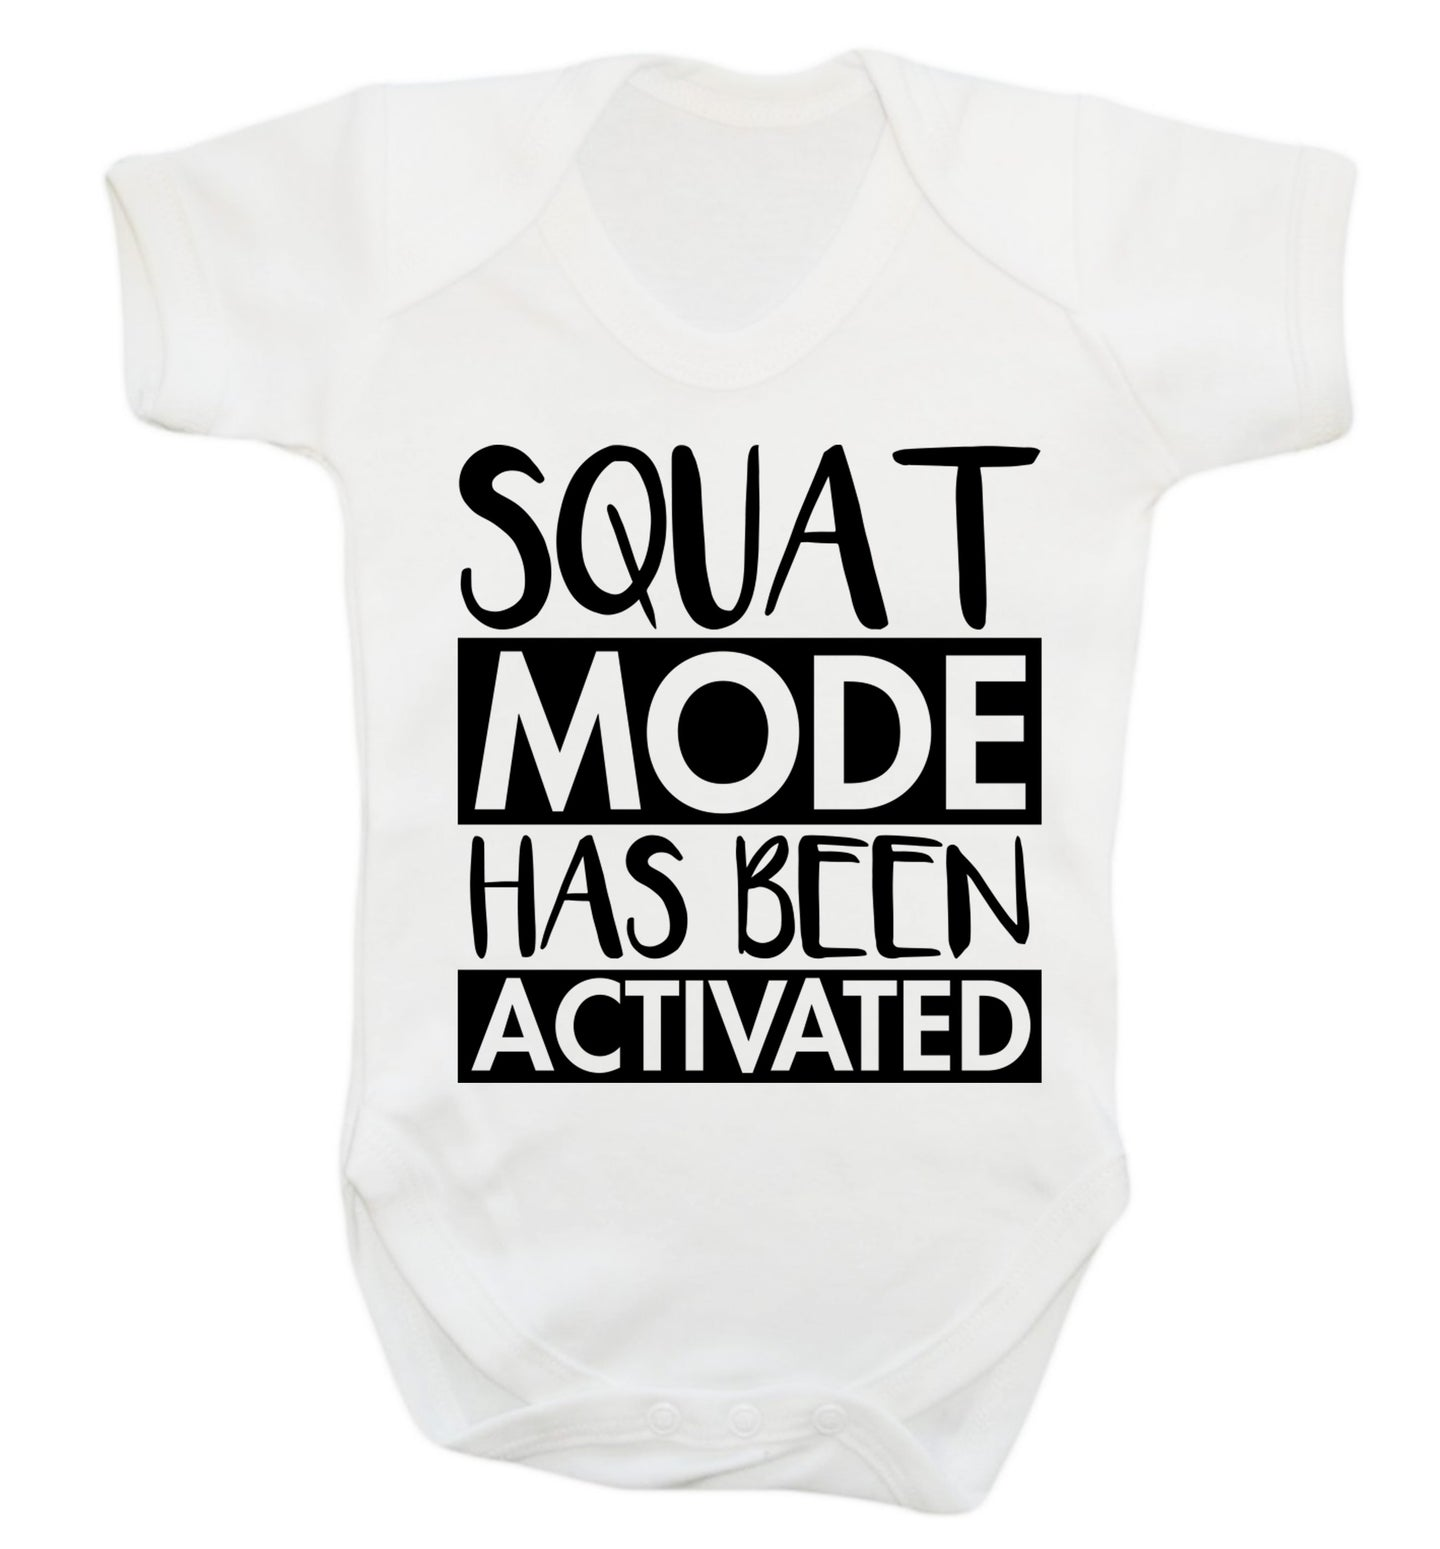 Squat mode activated Baby Vest white 18-24 months